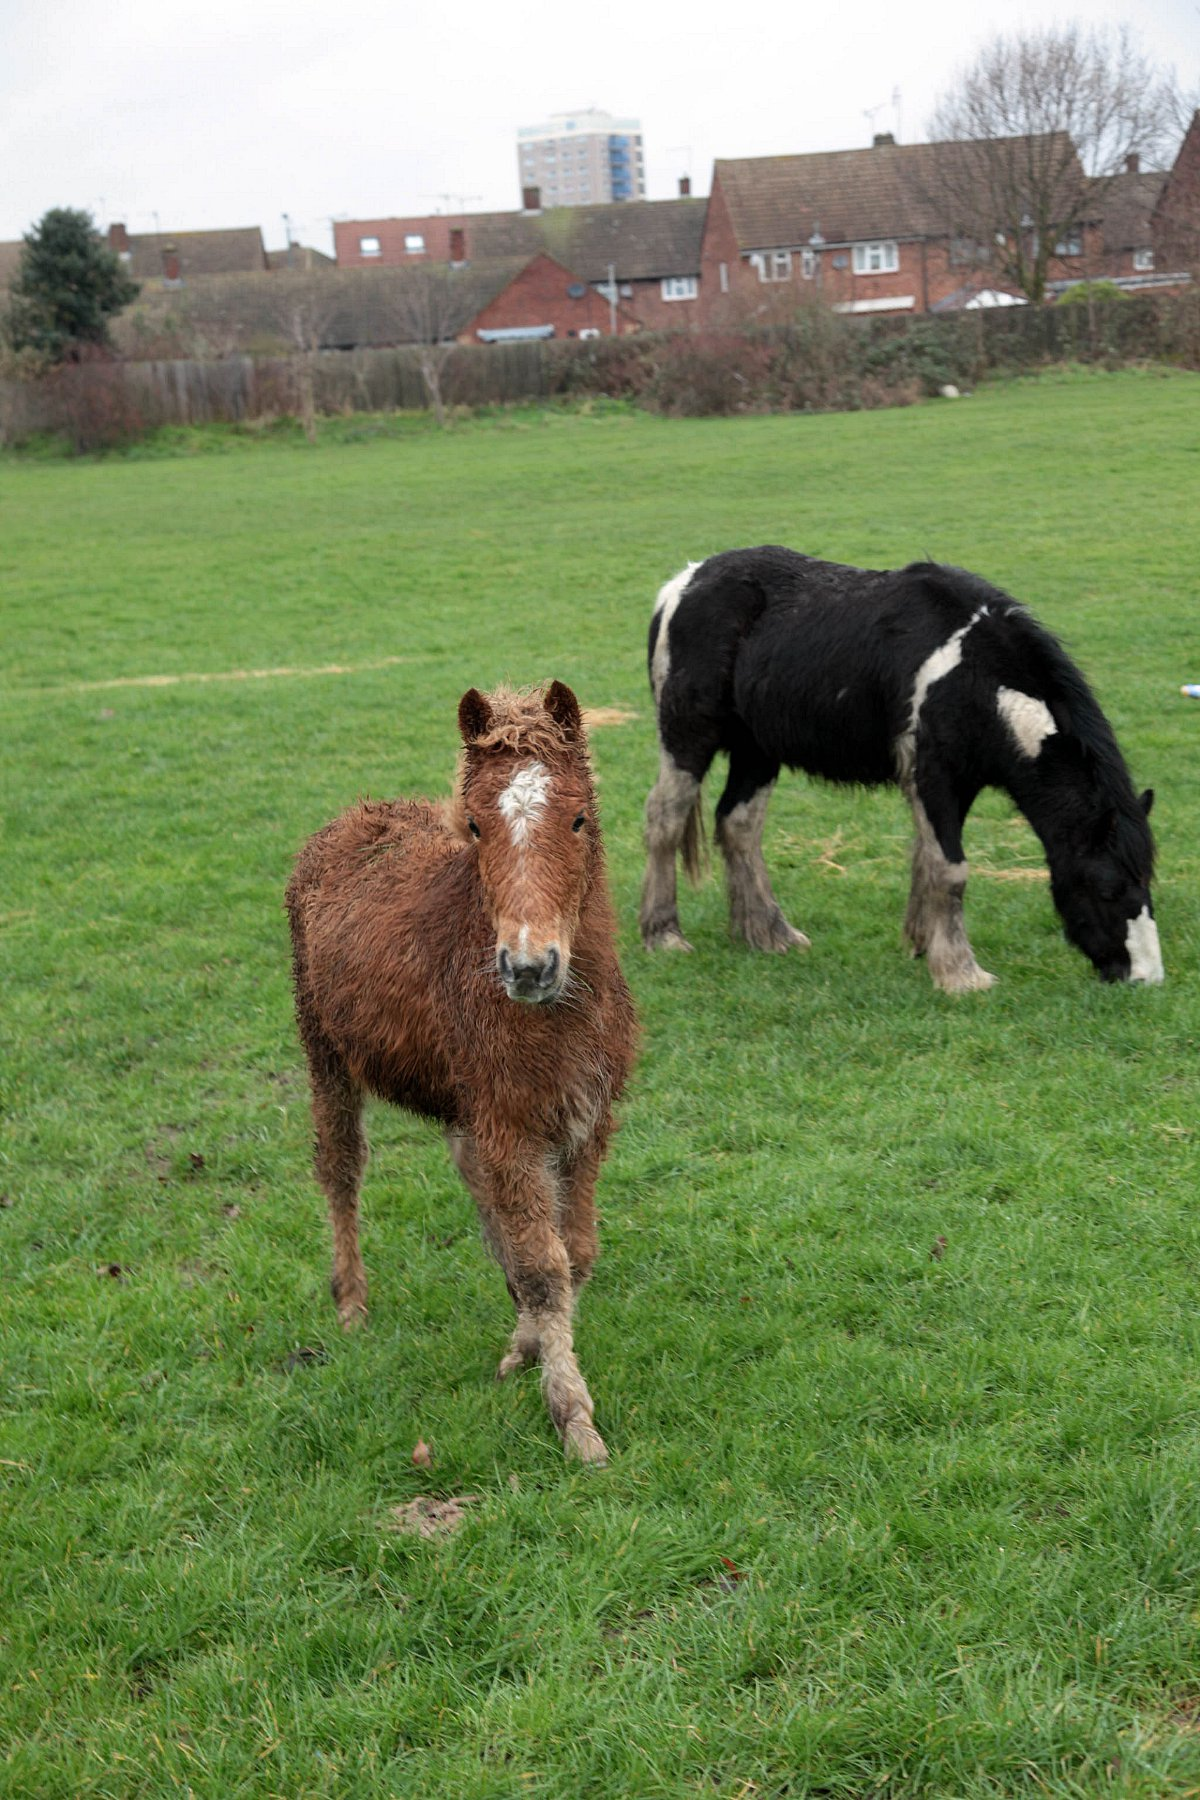 RSPCA lambasts 'horse crisis' following concerned calls about Slade Green animals